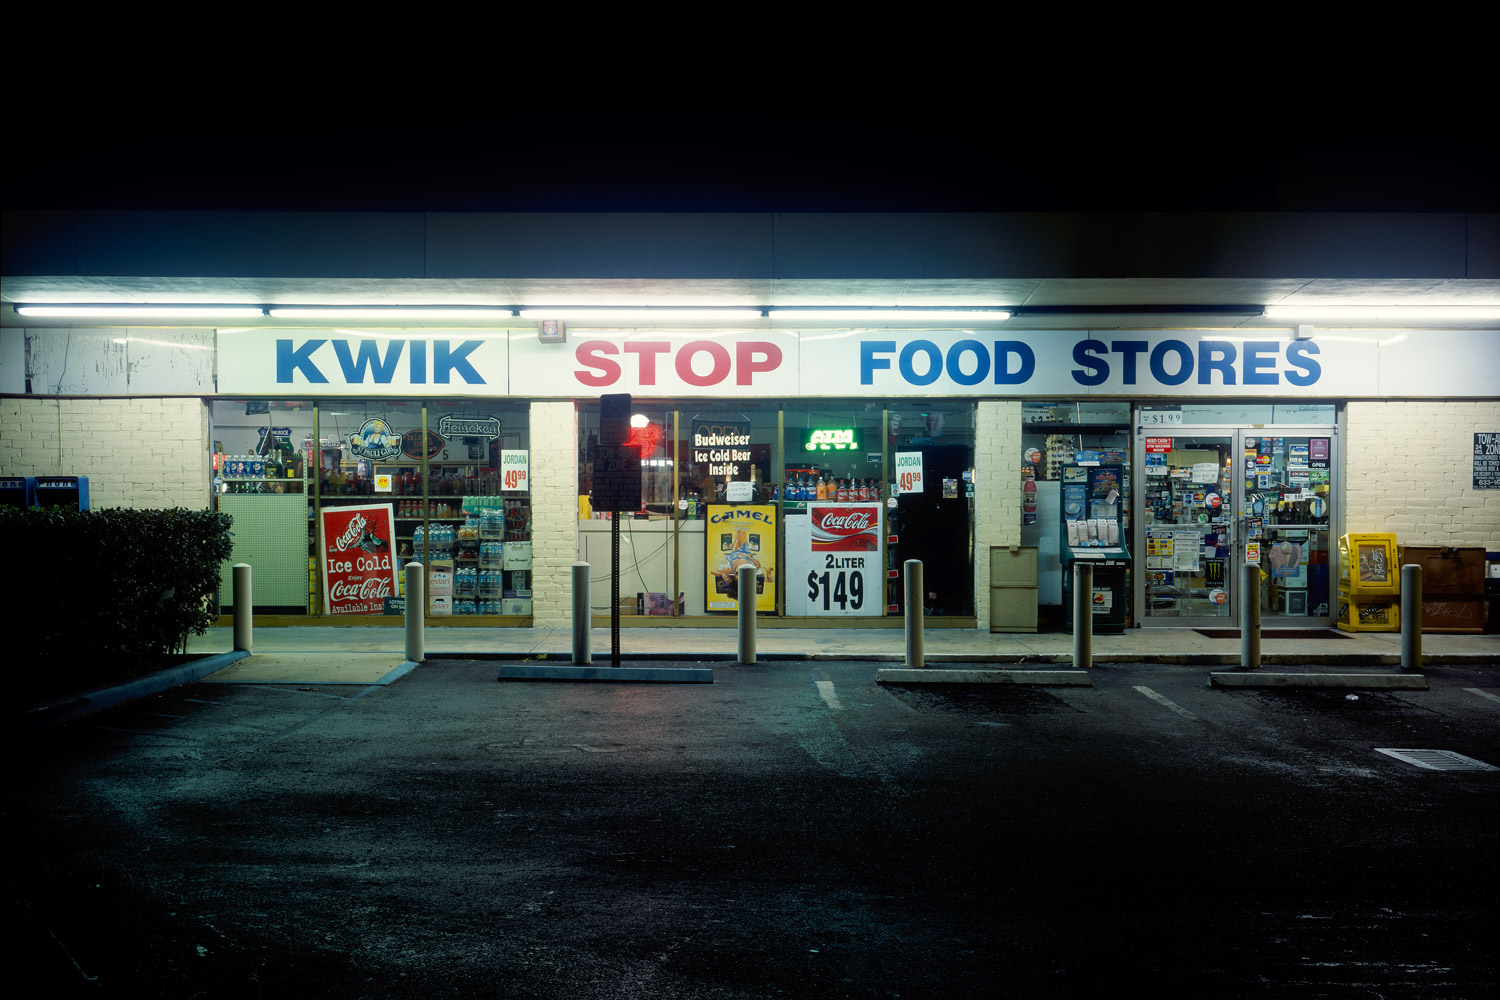 harlan erskine, ten convenient stores, '#203,' c-print, 20 x 30 inches, 2004